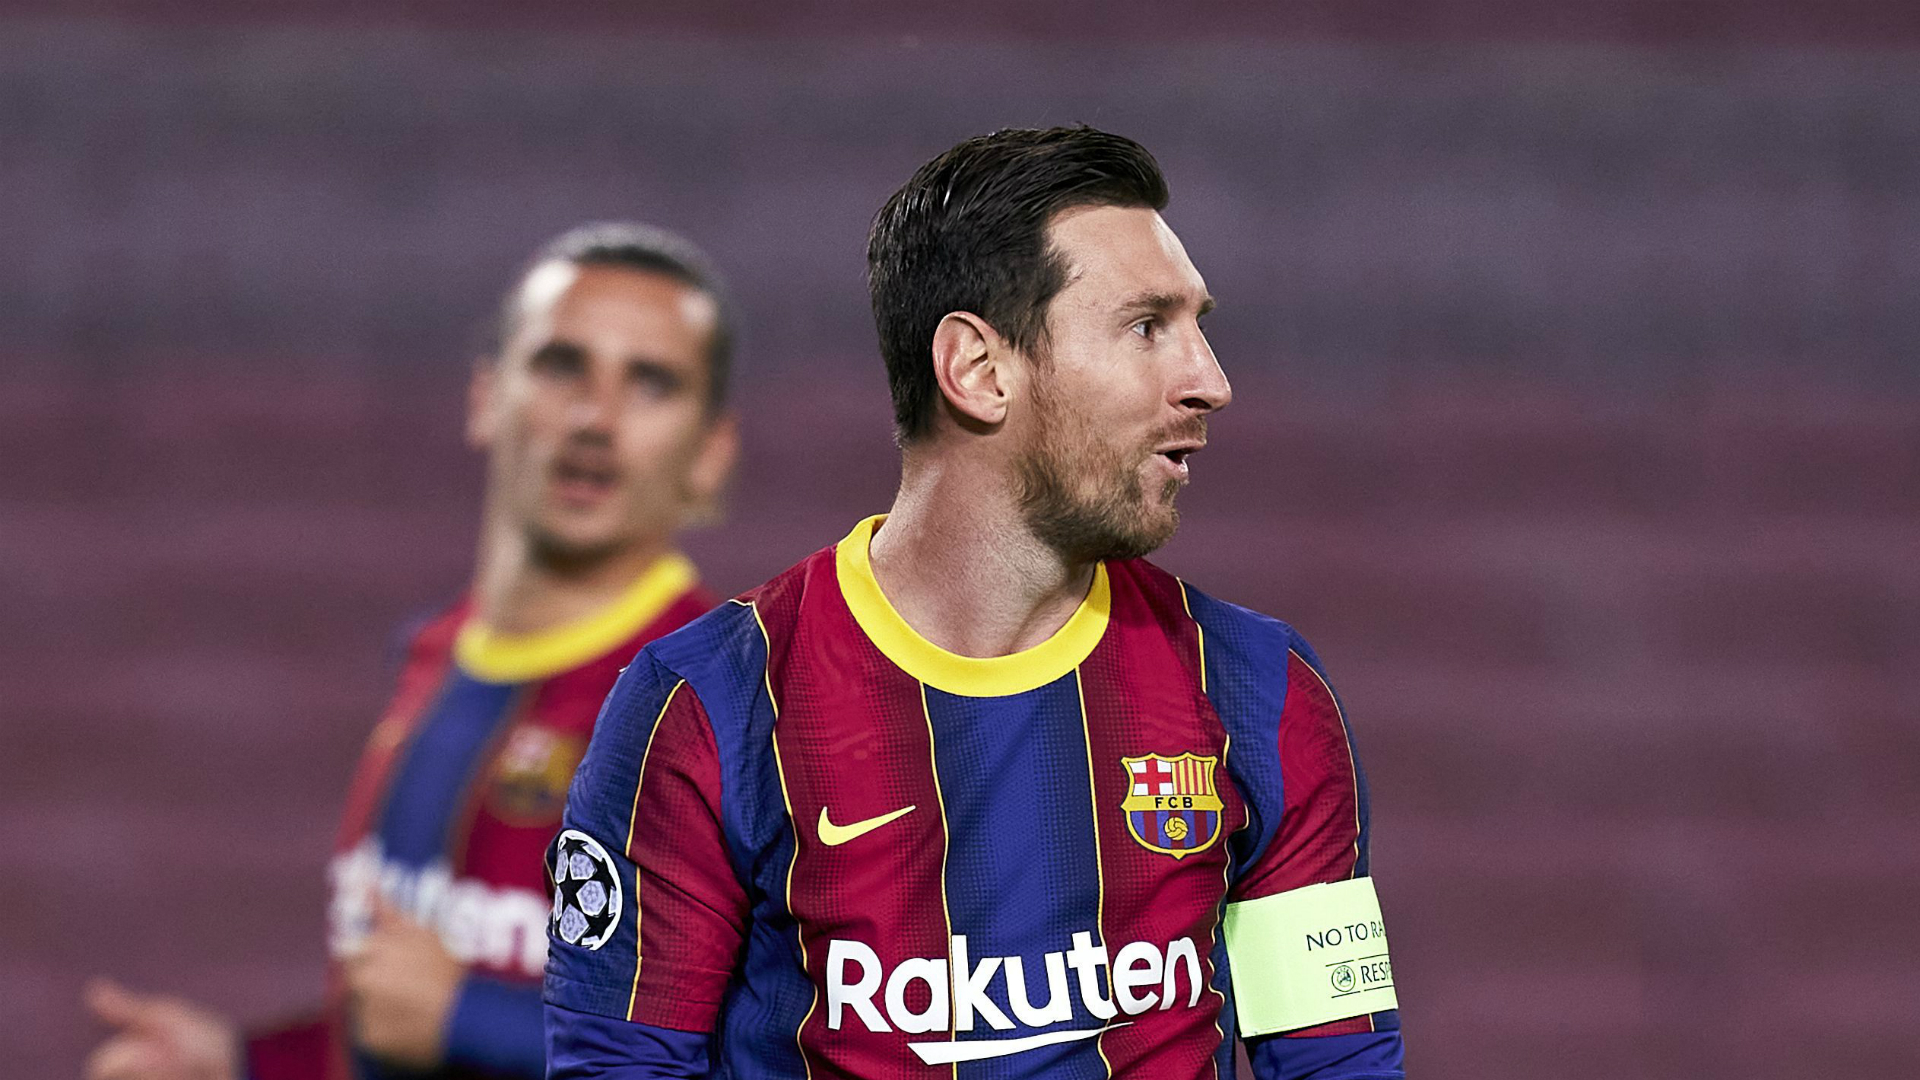 Haaland's hammer, Juve's assist king and Messi the creator - Champions League group stage data dive